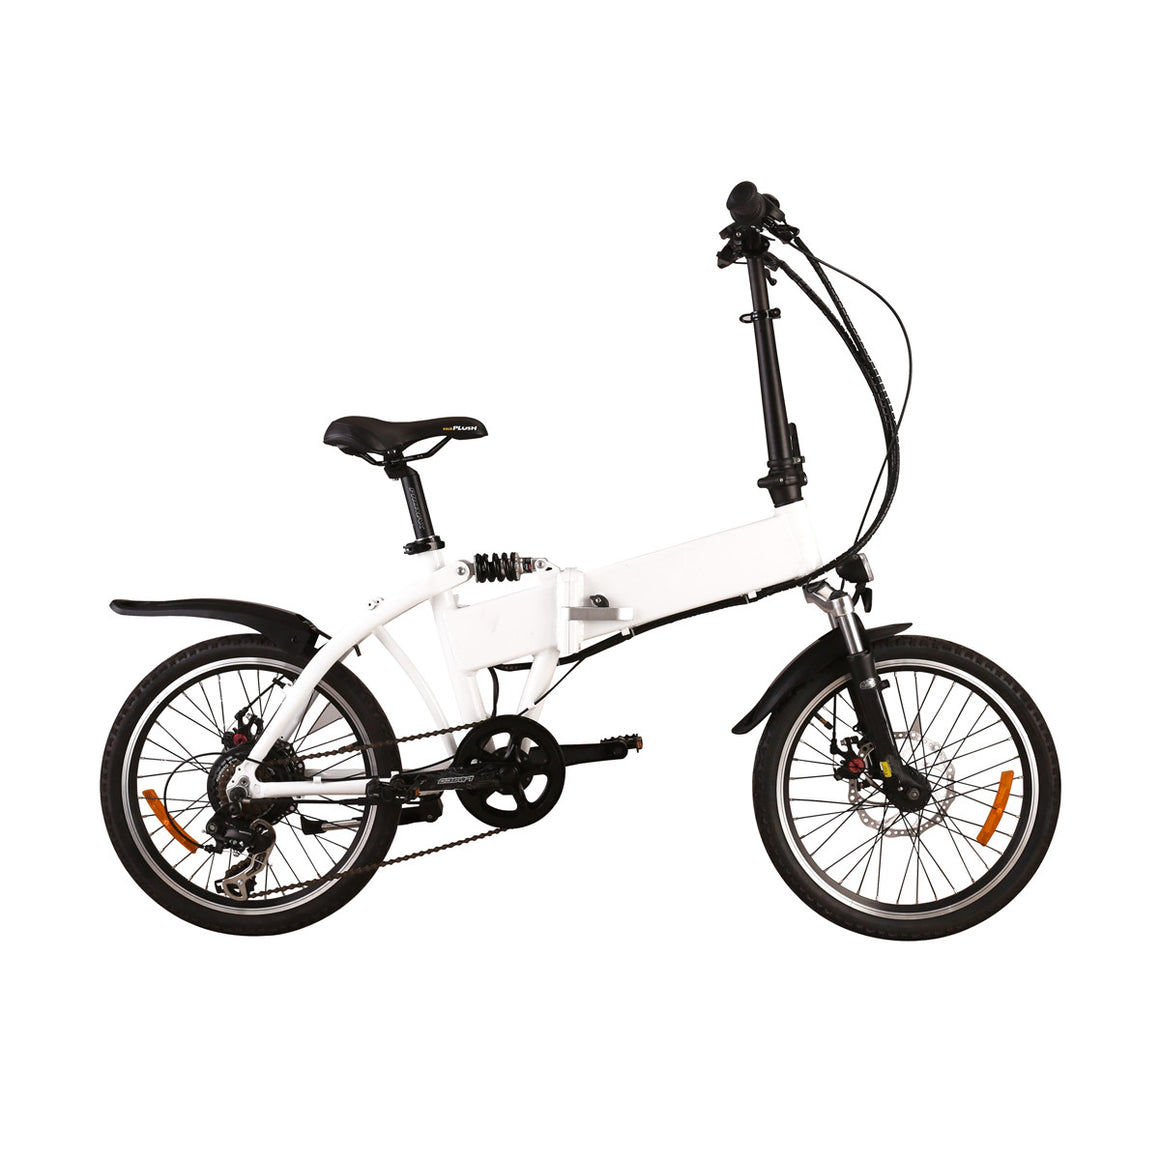 SMTEV™ Smart Bend Electric Bicycle - E-Bike, smartevmobility, SMTEV smart ev, mobility, ev, smartev, smtev, canada, hoverboard, segway